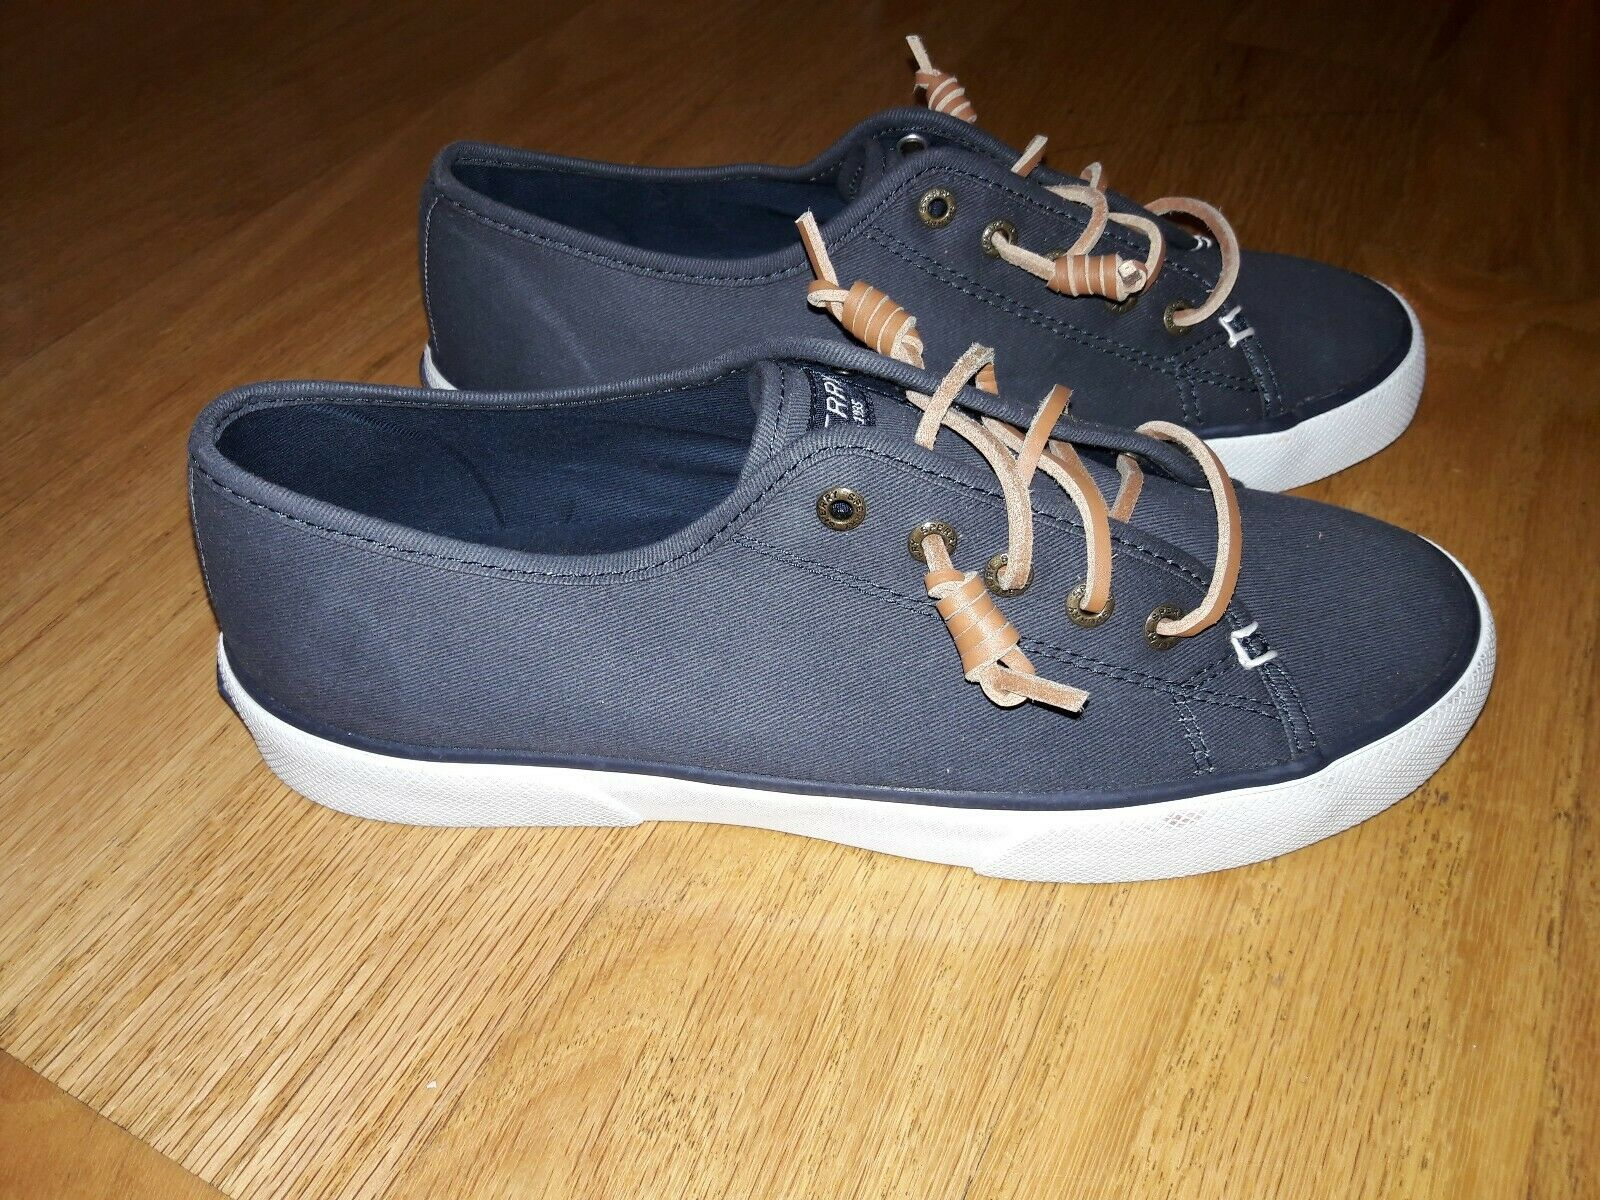 Sperry STS95129 Women's Pier View Shoes Navy Size 7.5M